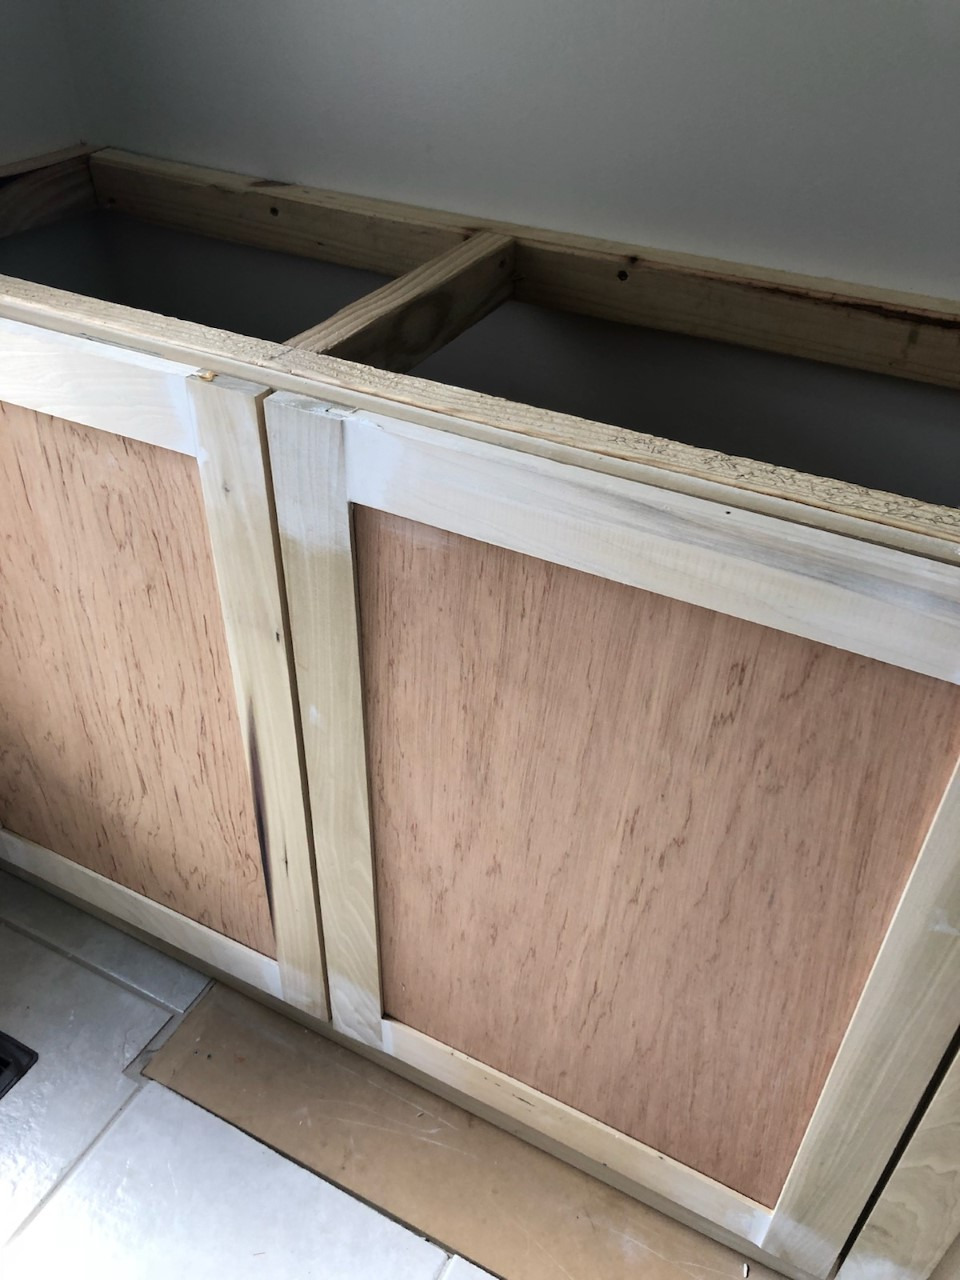 How to Make Kitchen Cabinet Doors Beautiful Diy Kitchen Cabinets for Under $200 A Beginner S Tutorial